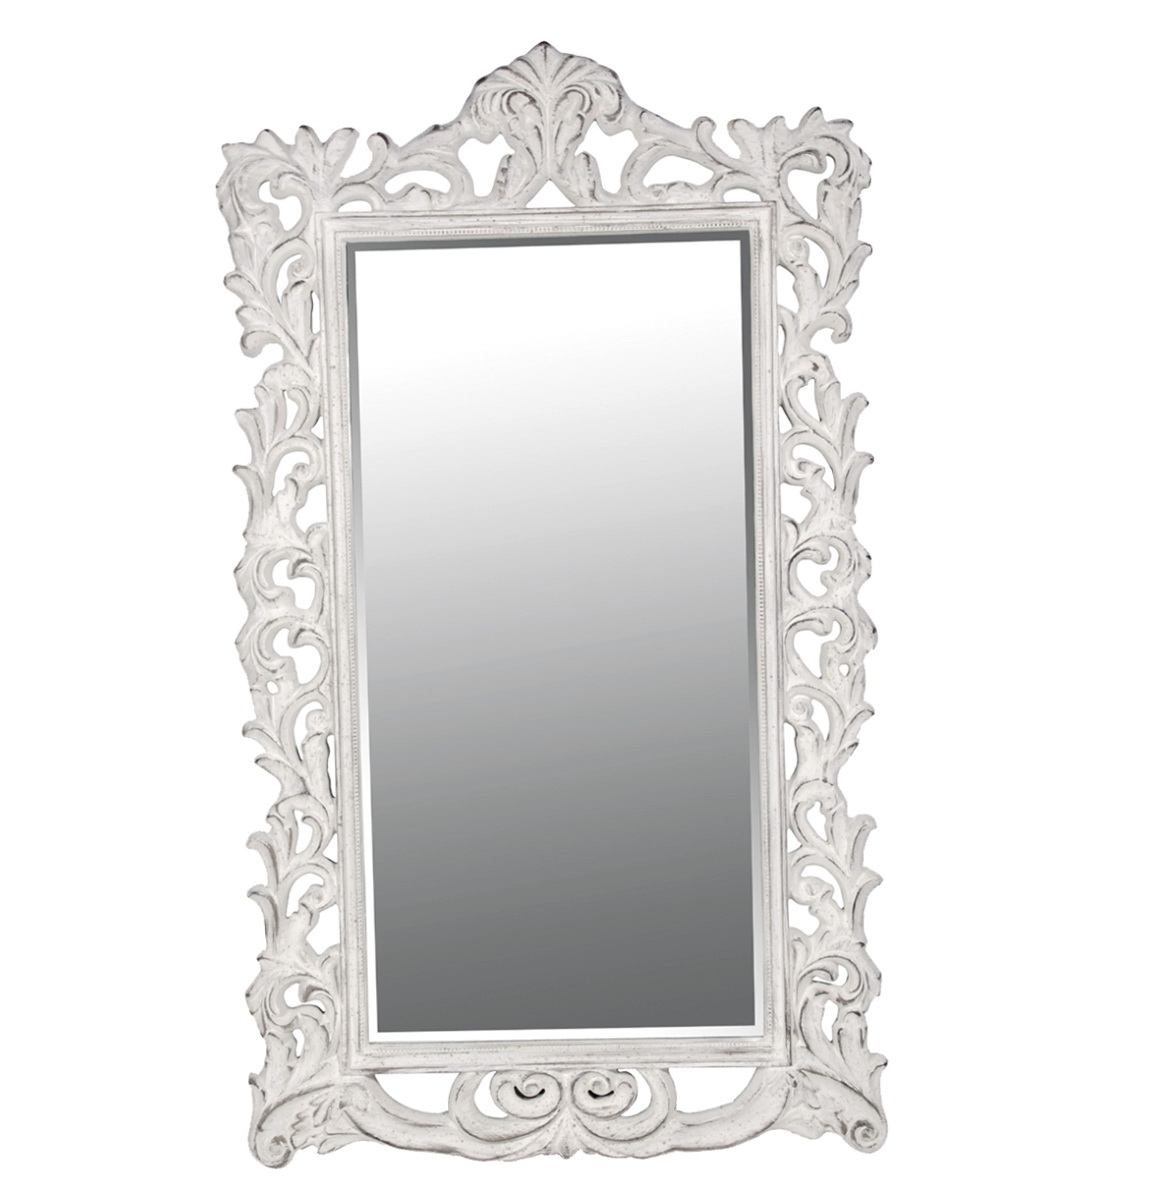 Antique white length mirror home 28 images large for White floor length mirror